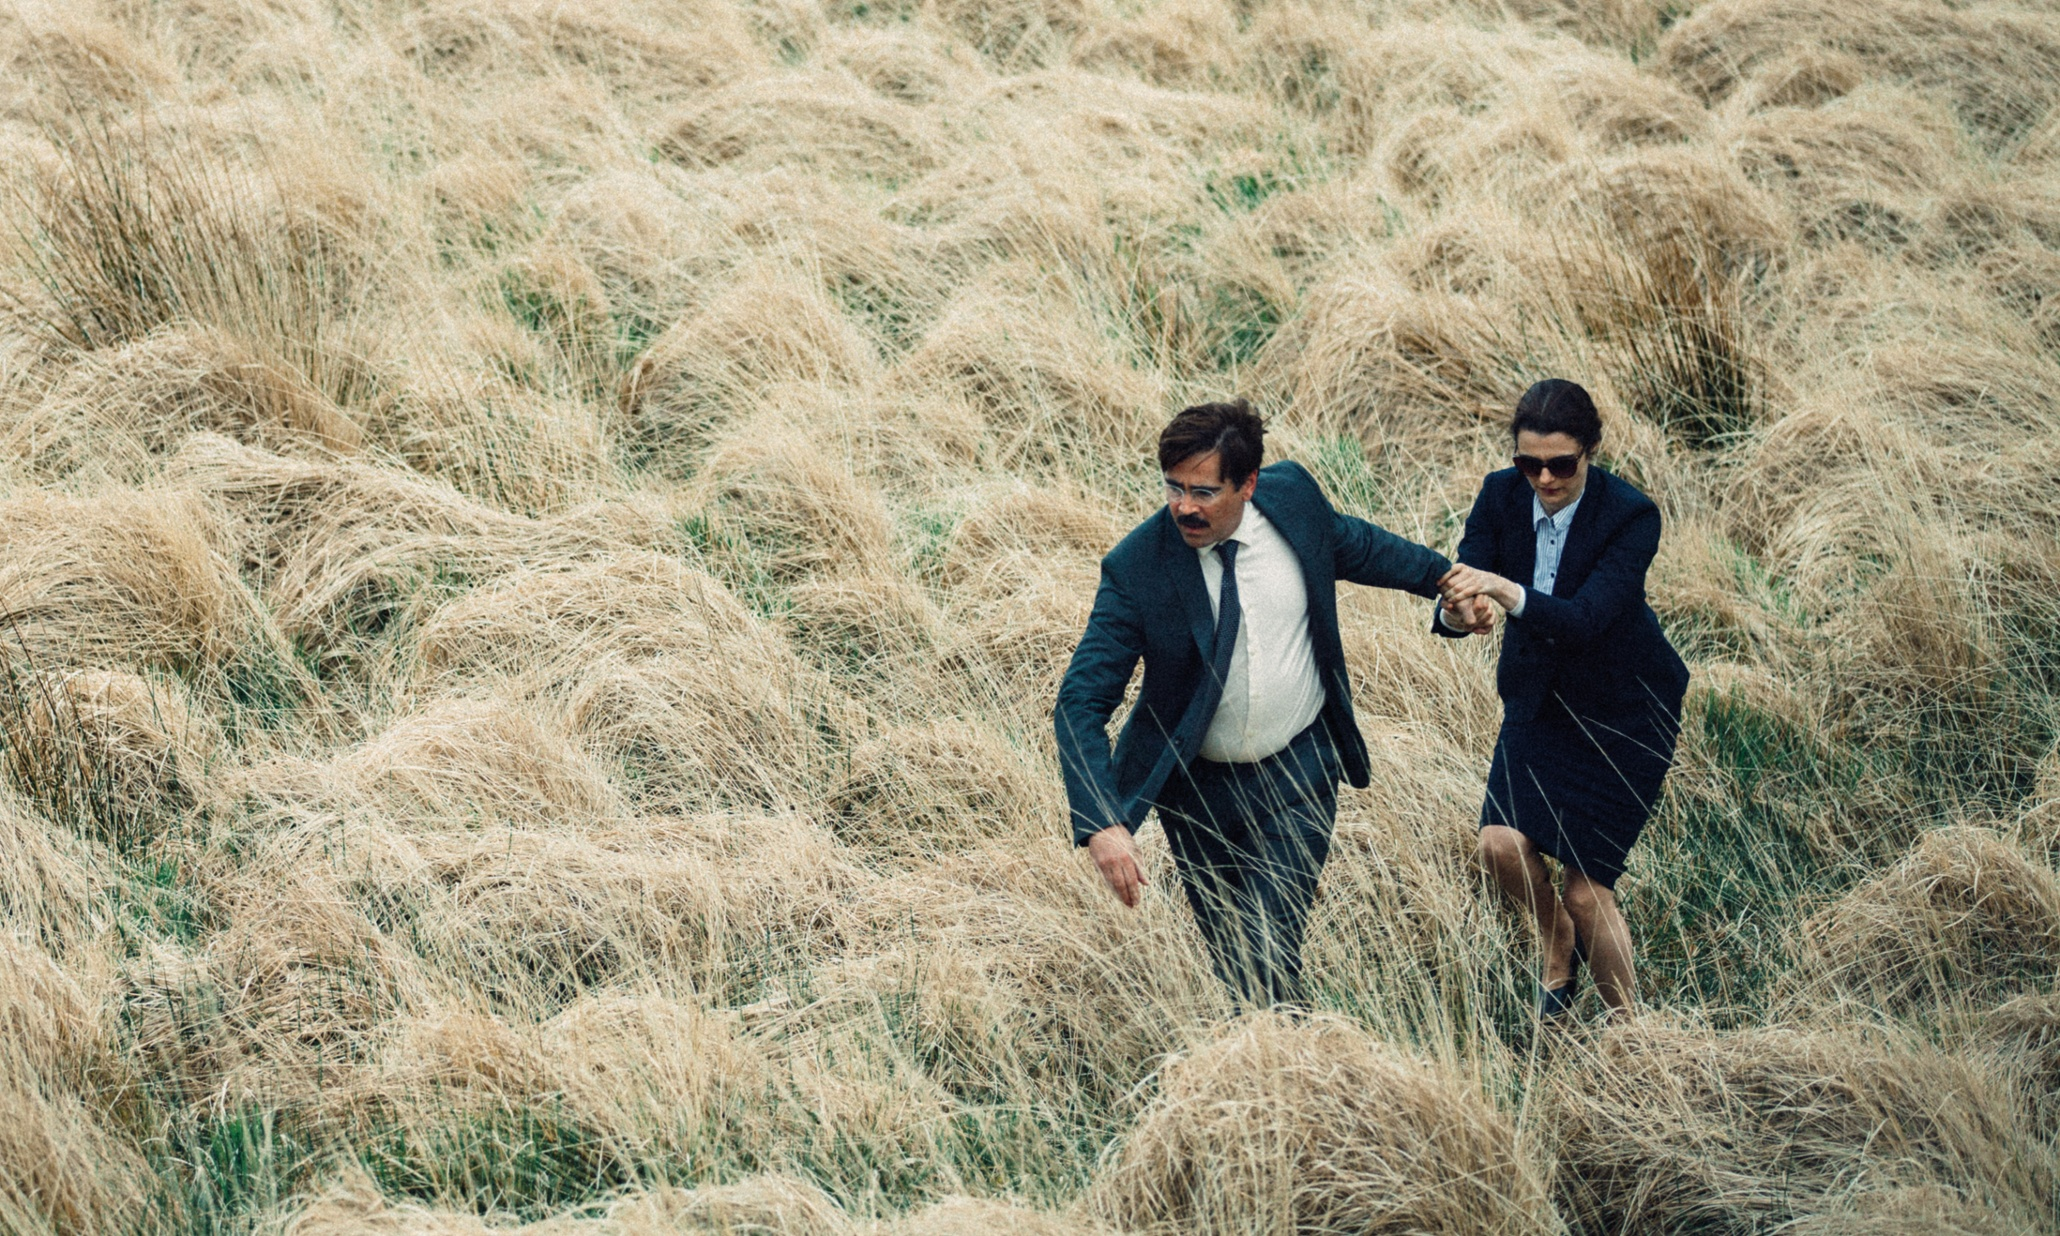 Caption: Colin Farrell and Rachel Weisz in 'The Lobster'